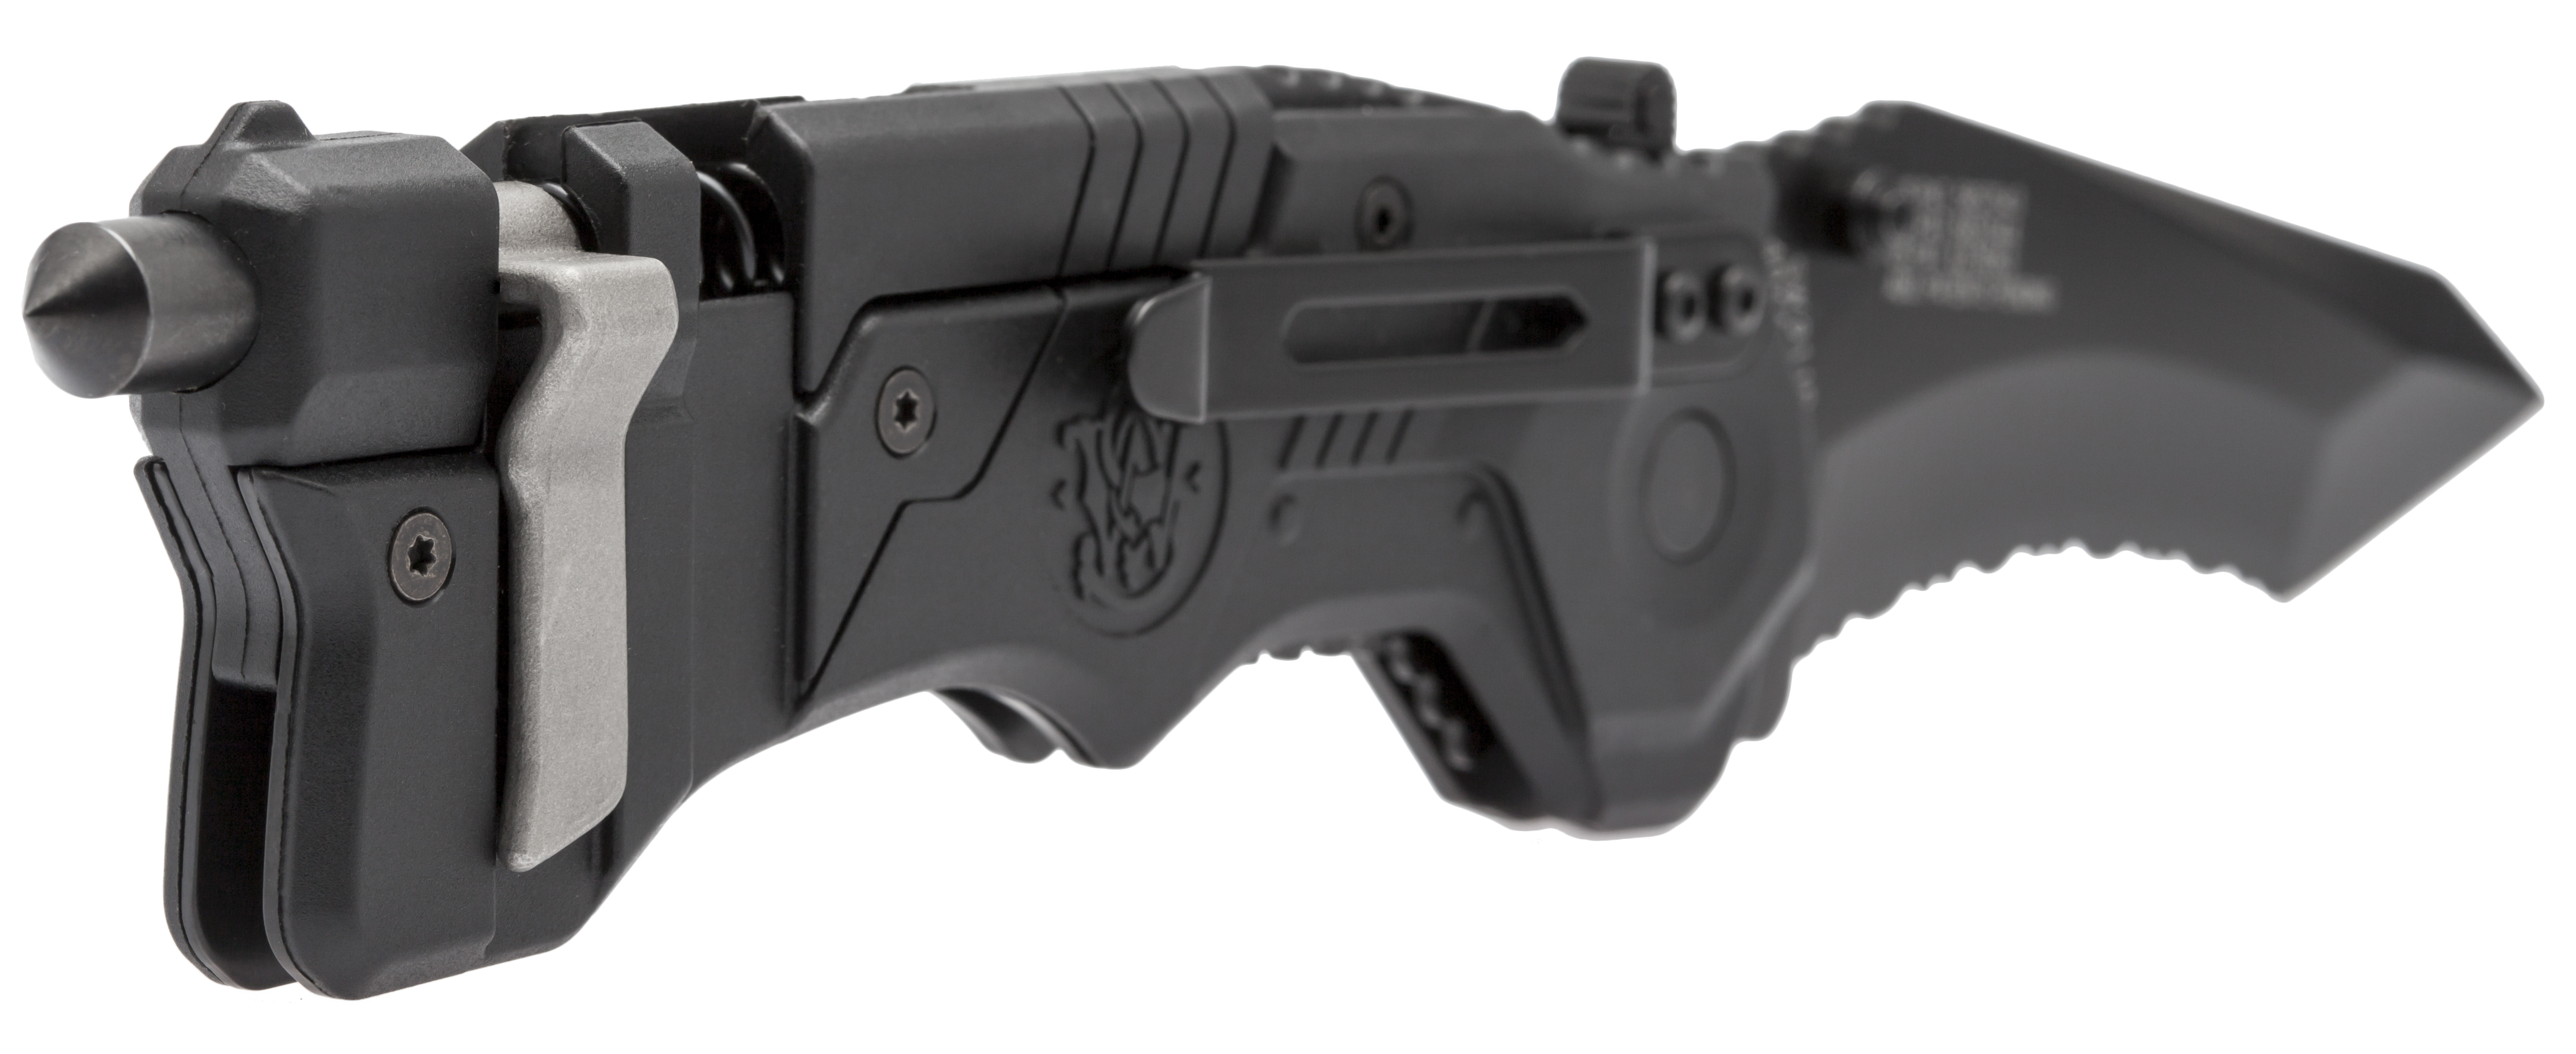 wesson chat sites Buy trijicon smith & wesson 9mm 3 dot bright & tough night sight set featuring fixed rear sight, green front and rear dots for pre-novak 5903/5904/ 5906/ 915/411.